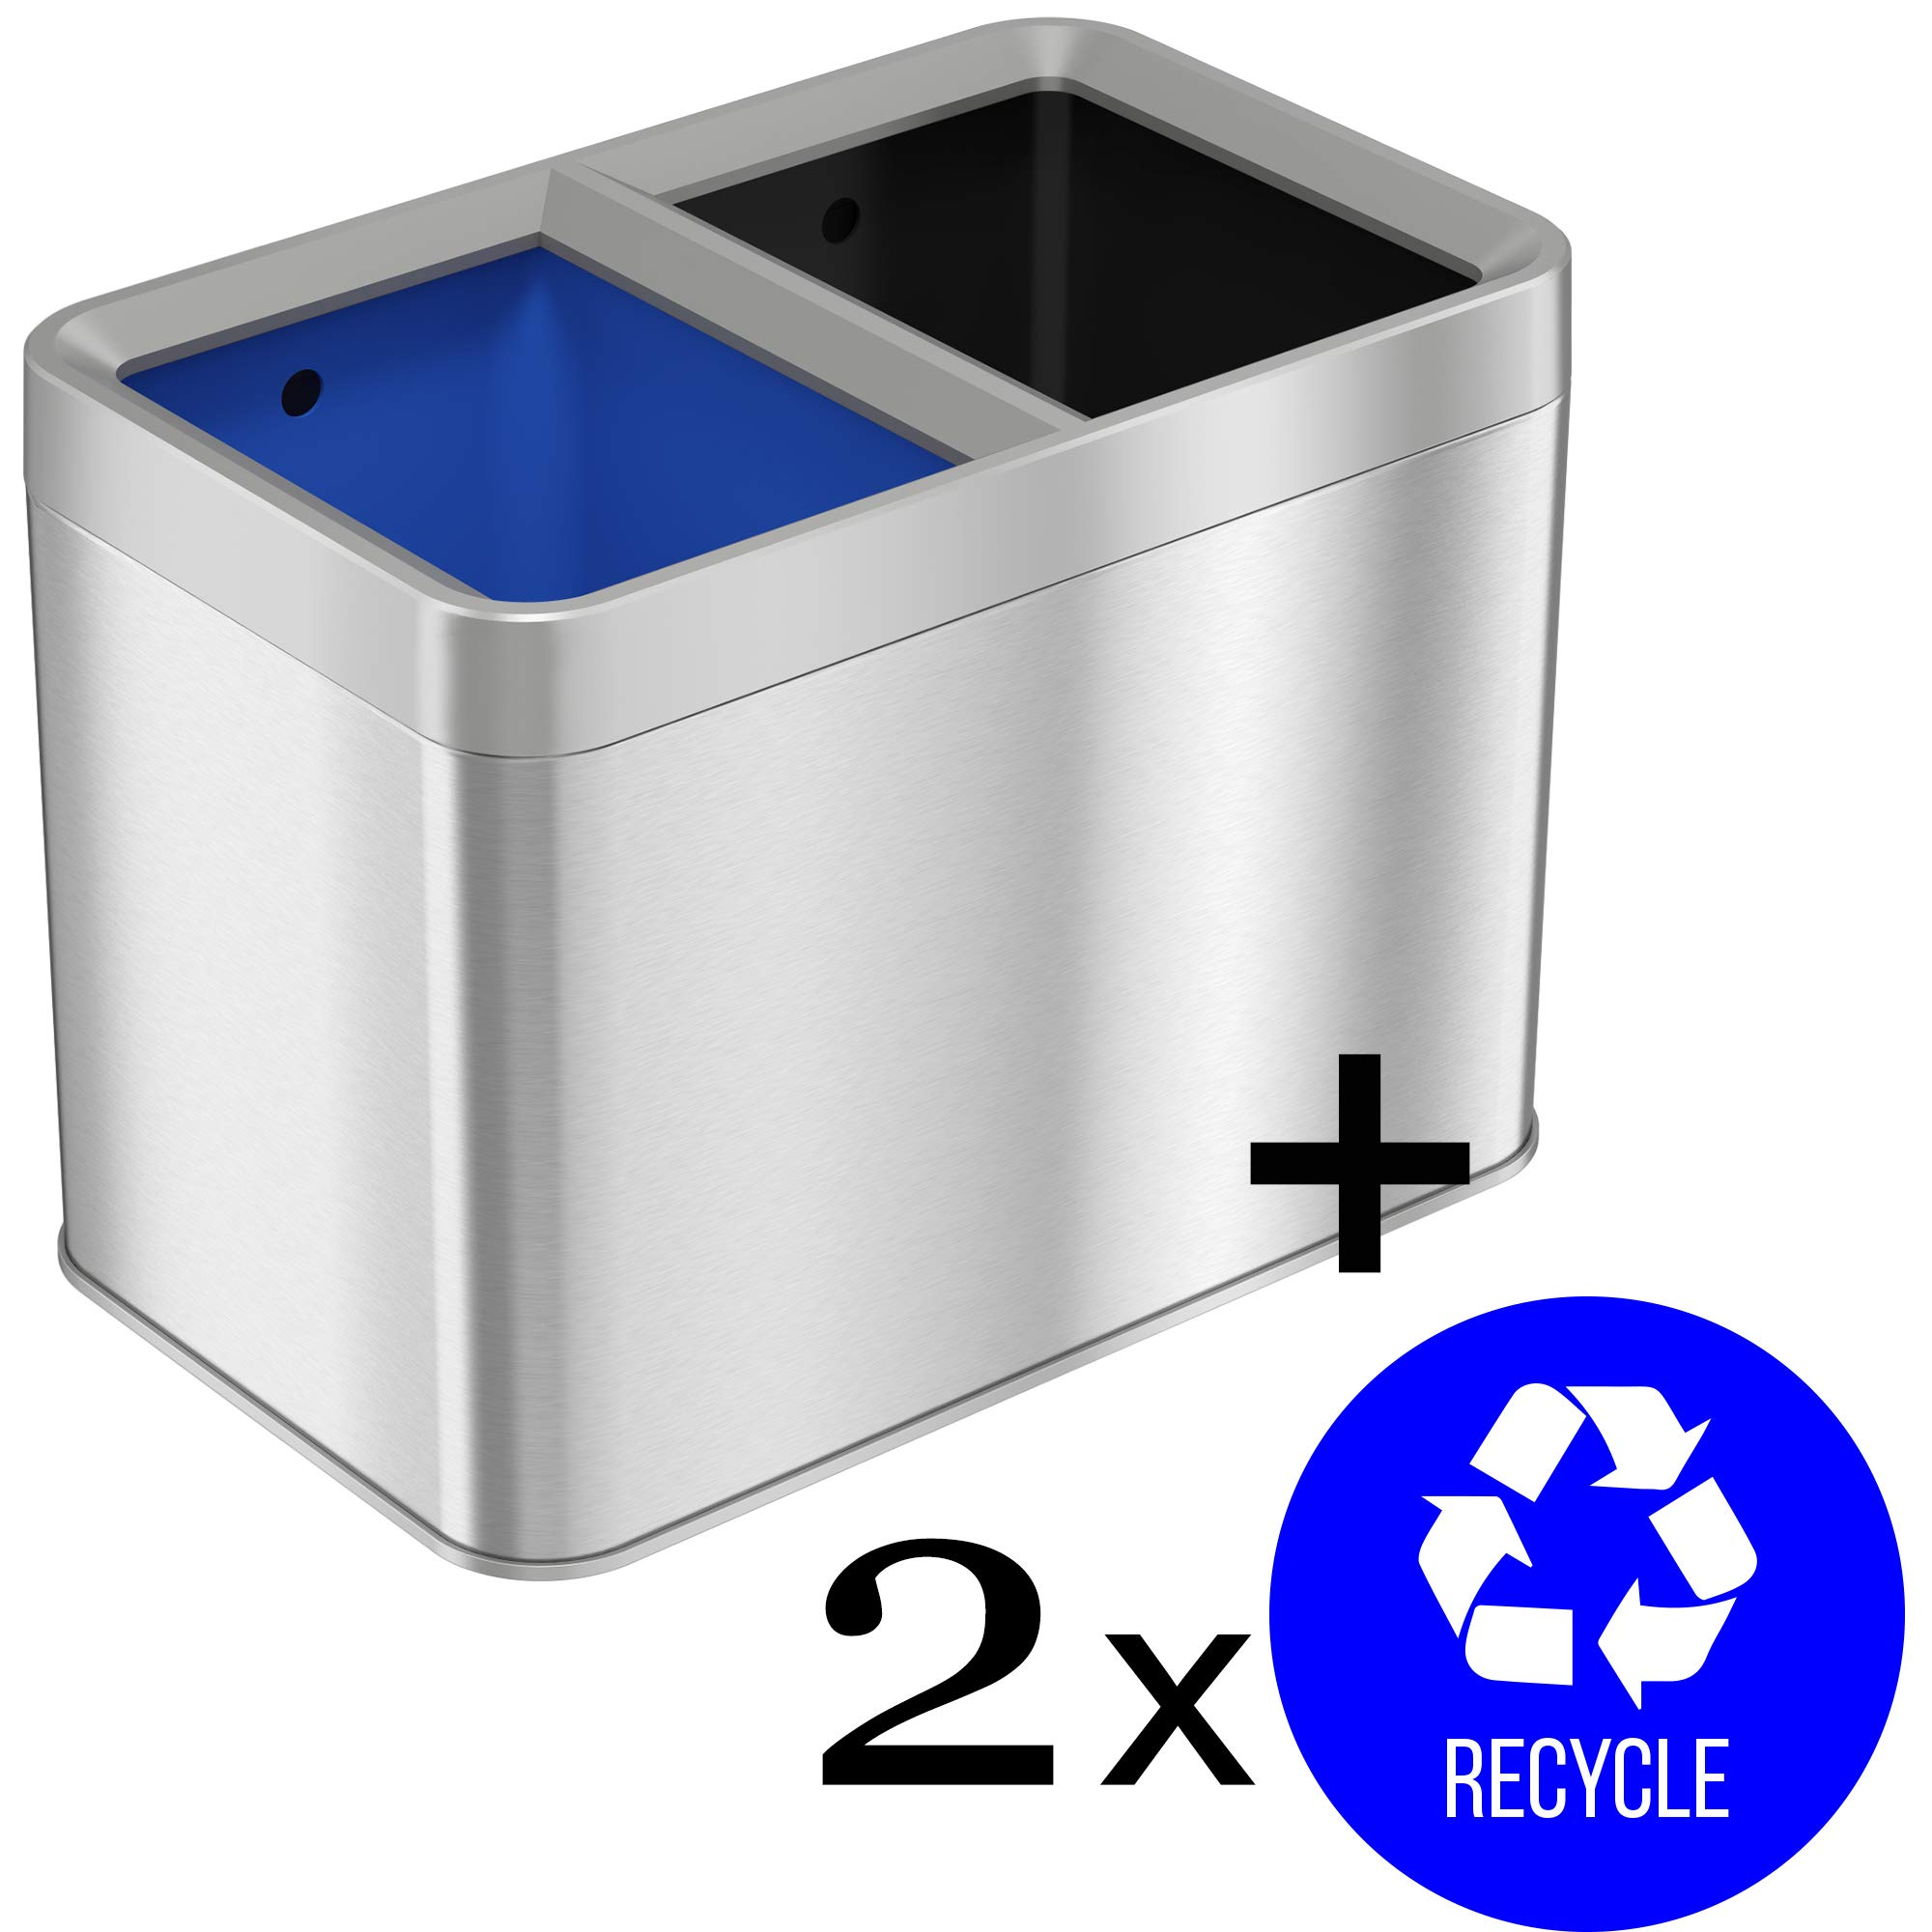 iTouchless Open Top Waste Bin for Trash Can & Recycle Bin with 2 Recycle Stickers, Dual Compartment Slim Stainless Steel Container, 20 Liter / 5.3 Gallon